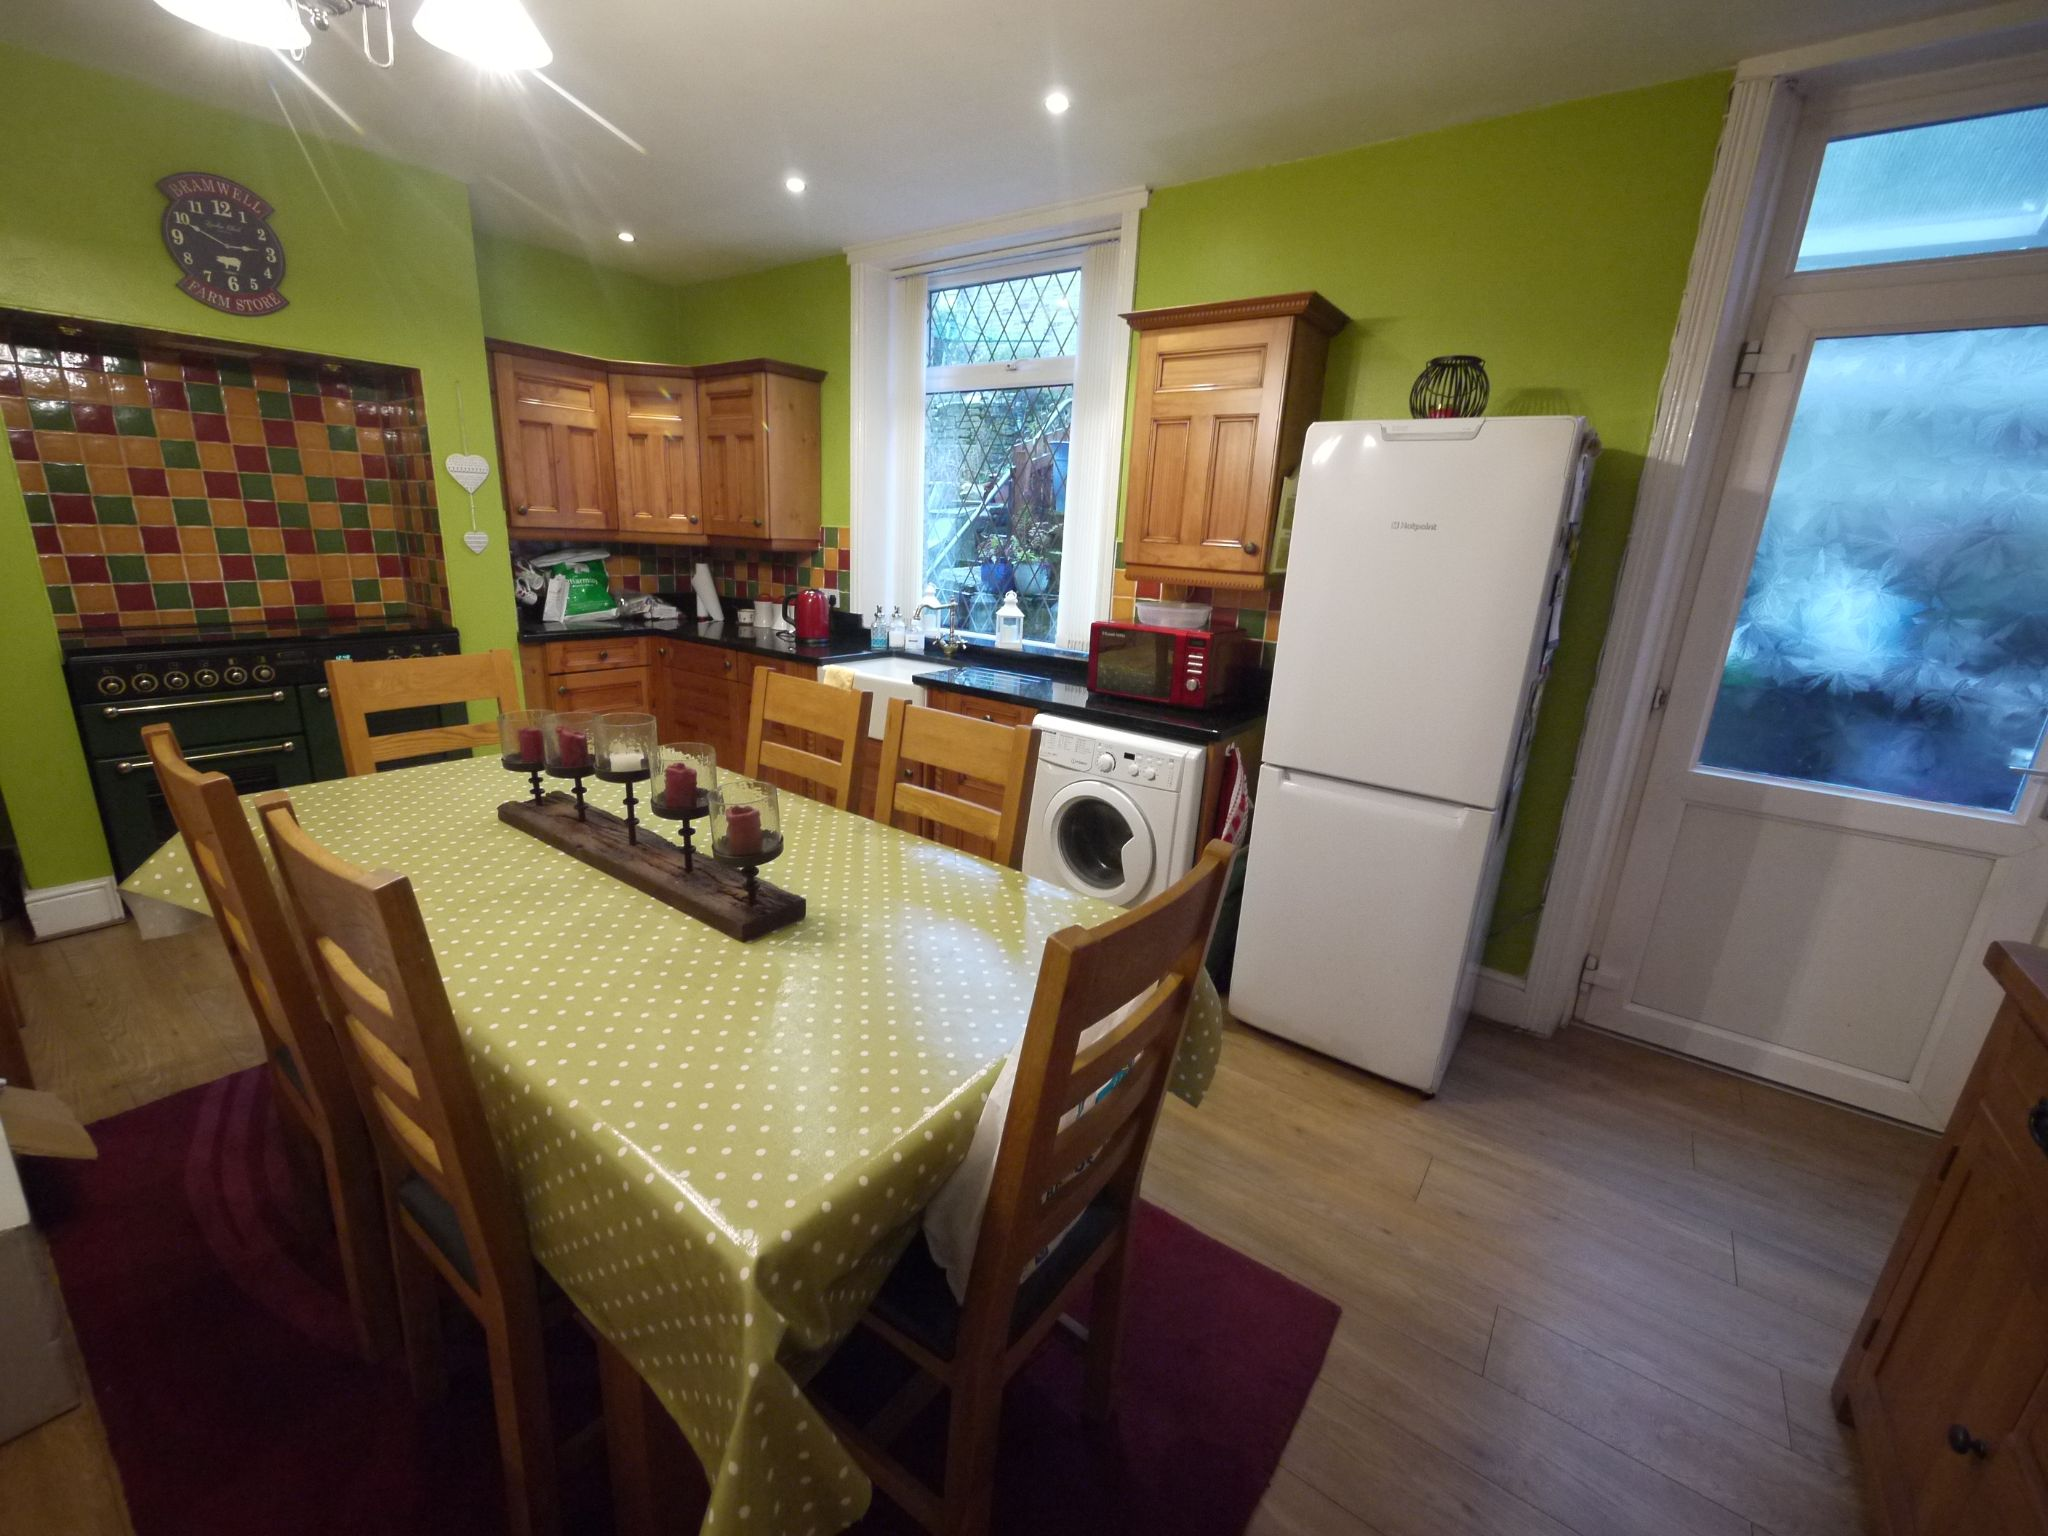 3 bedroom semi-detached house For Sale in Calderdale - Photograph 6.